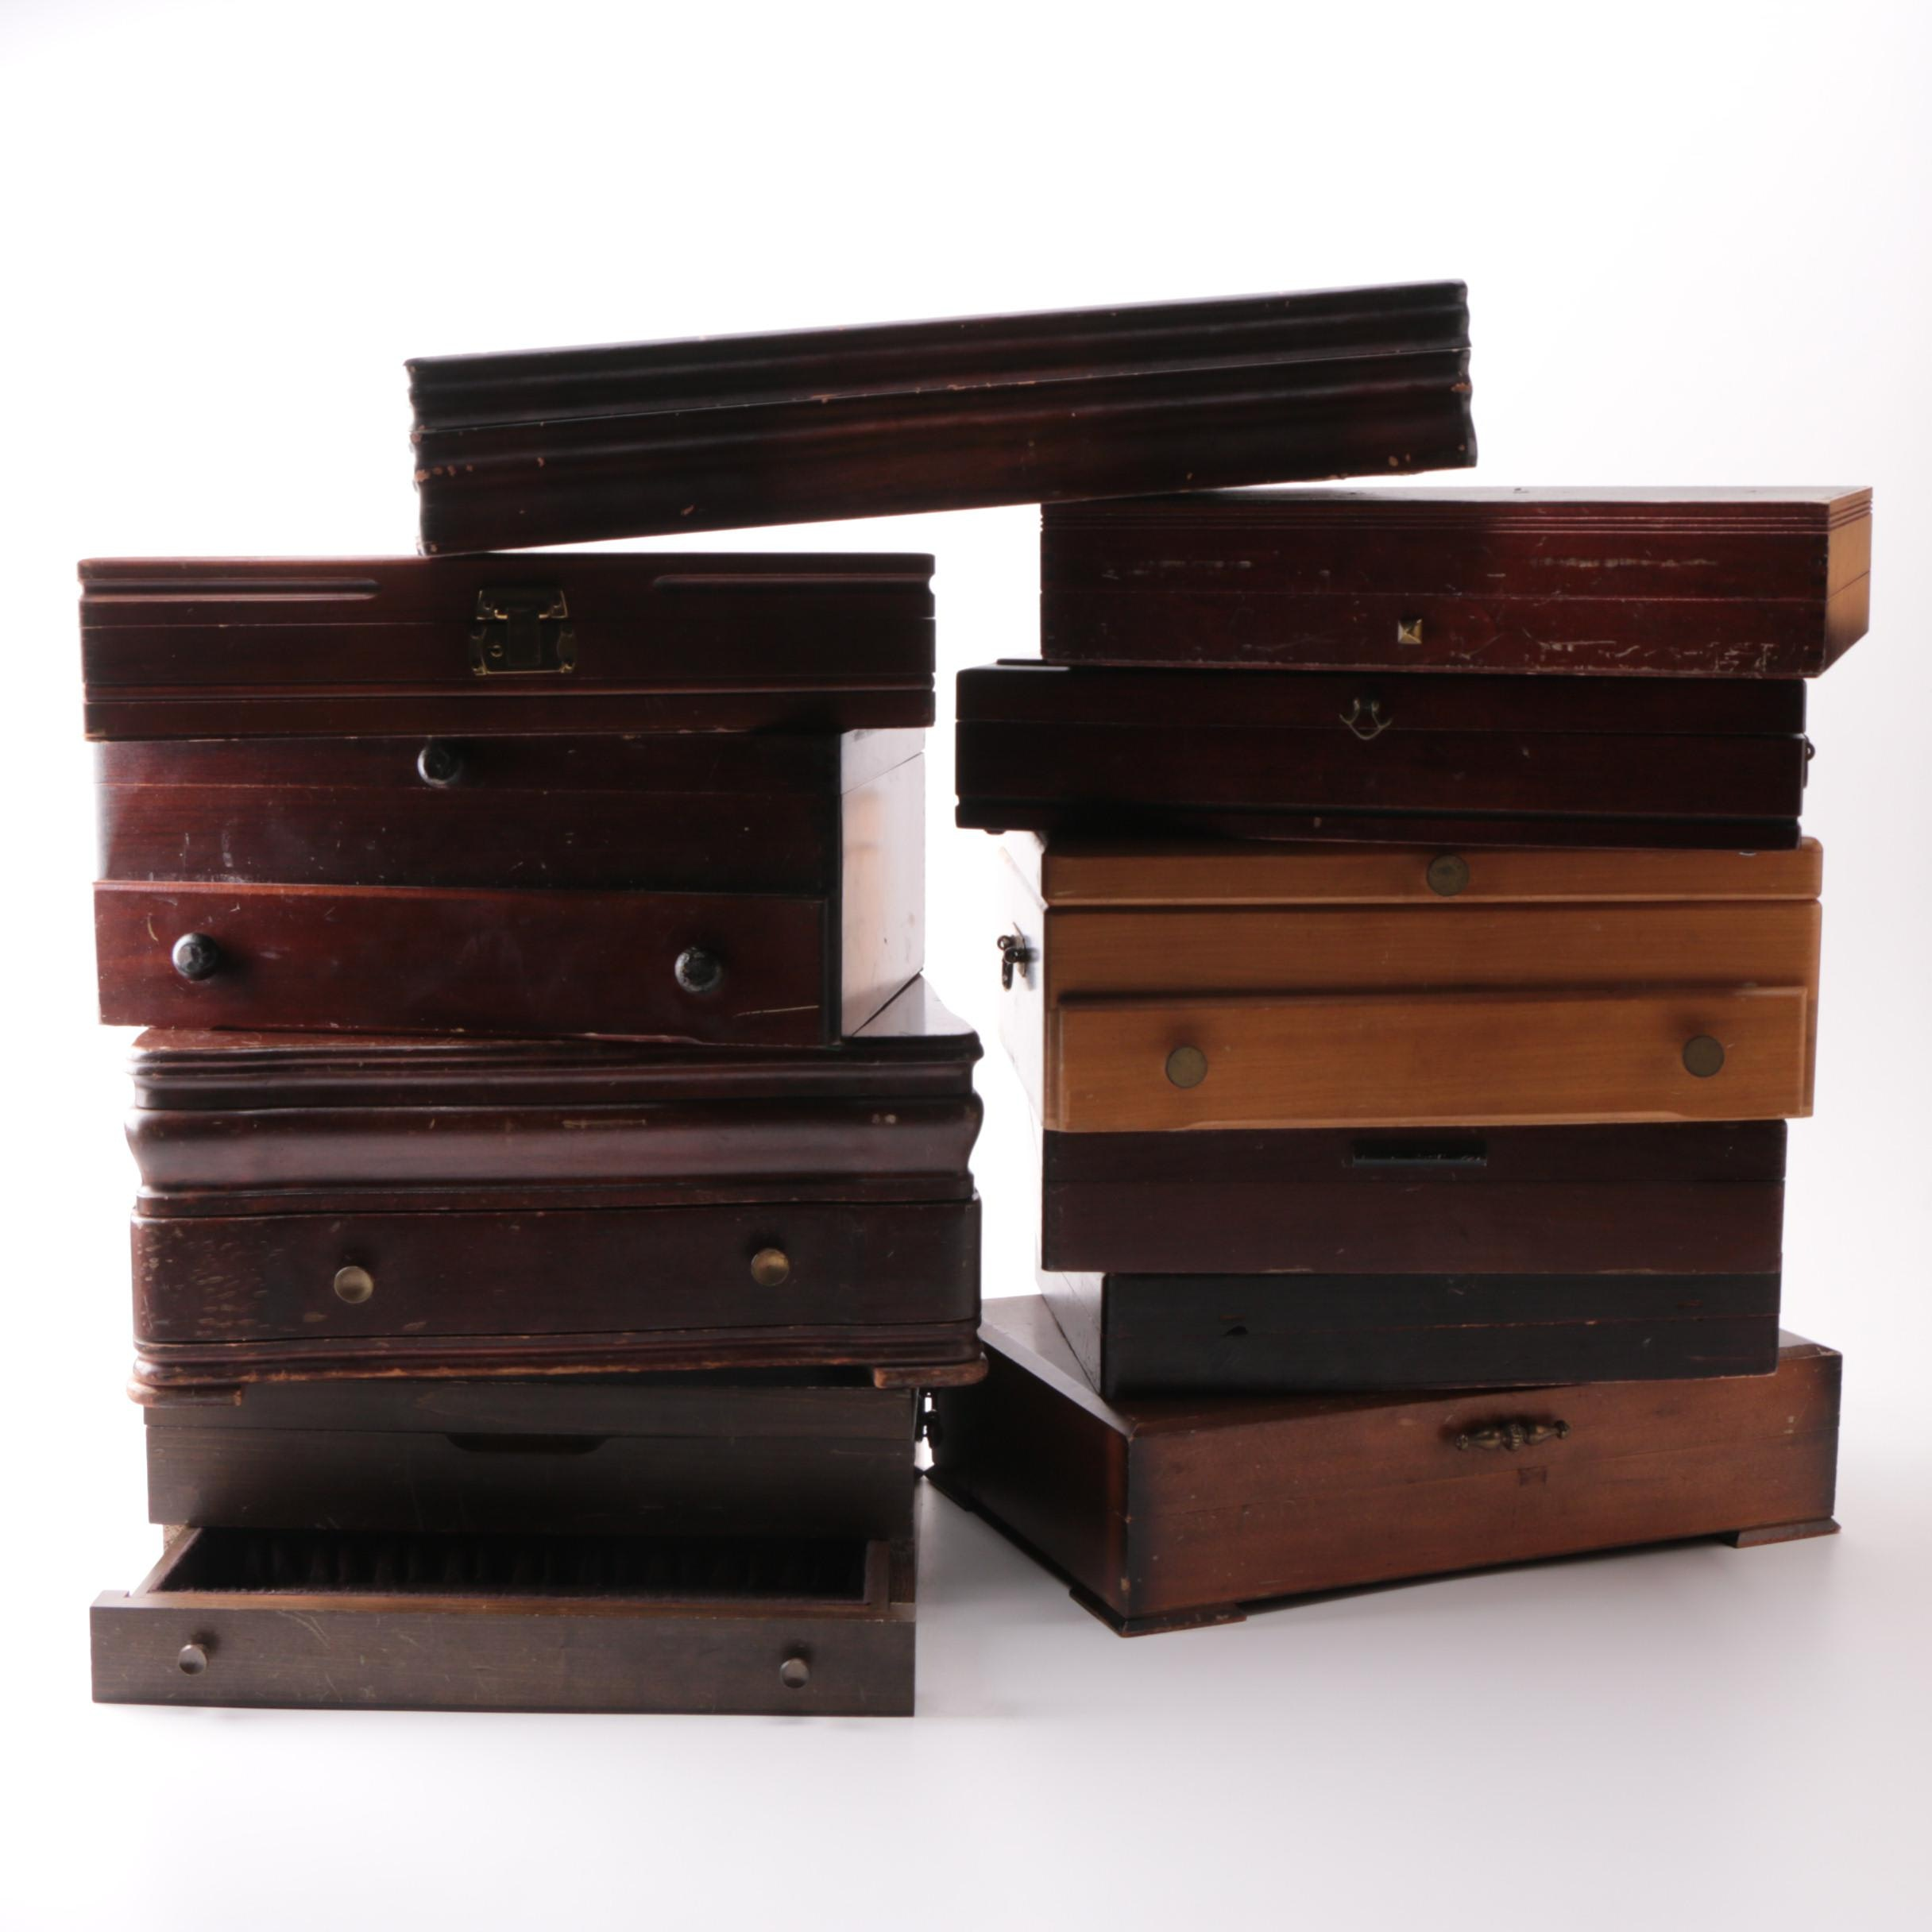 Naken's Flatware Chest and Other Flatware Chests